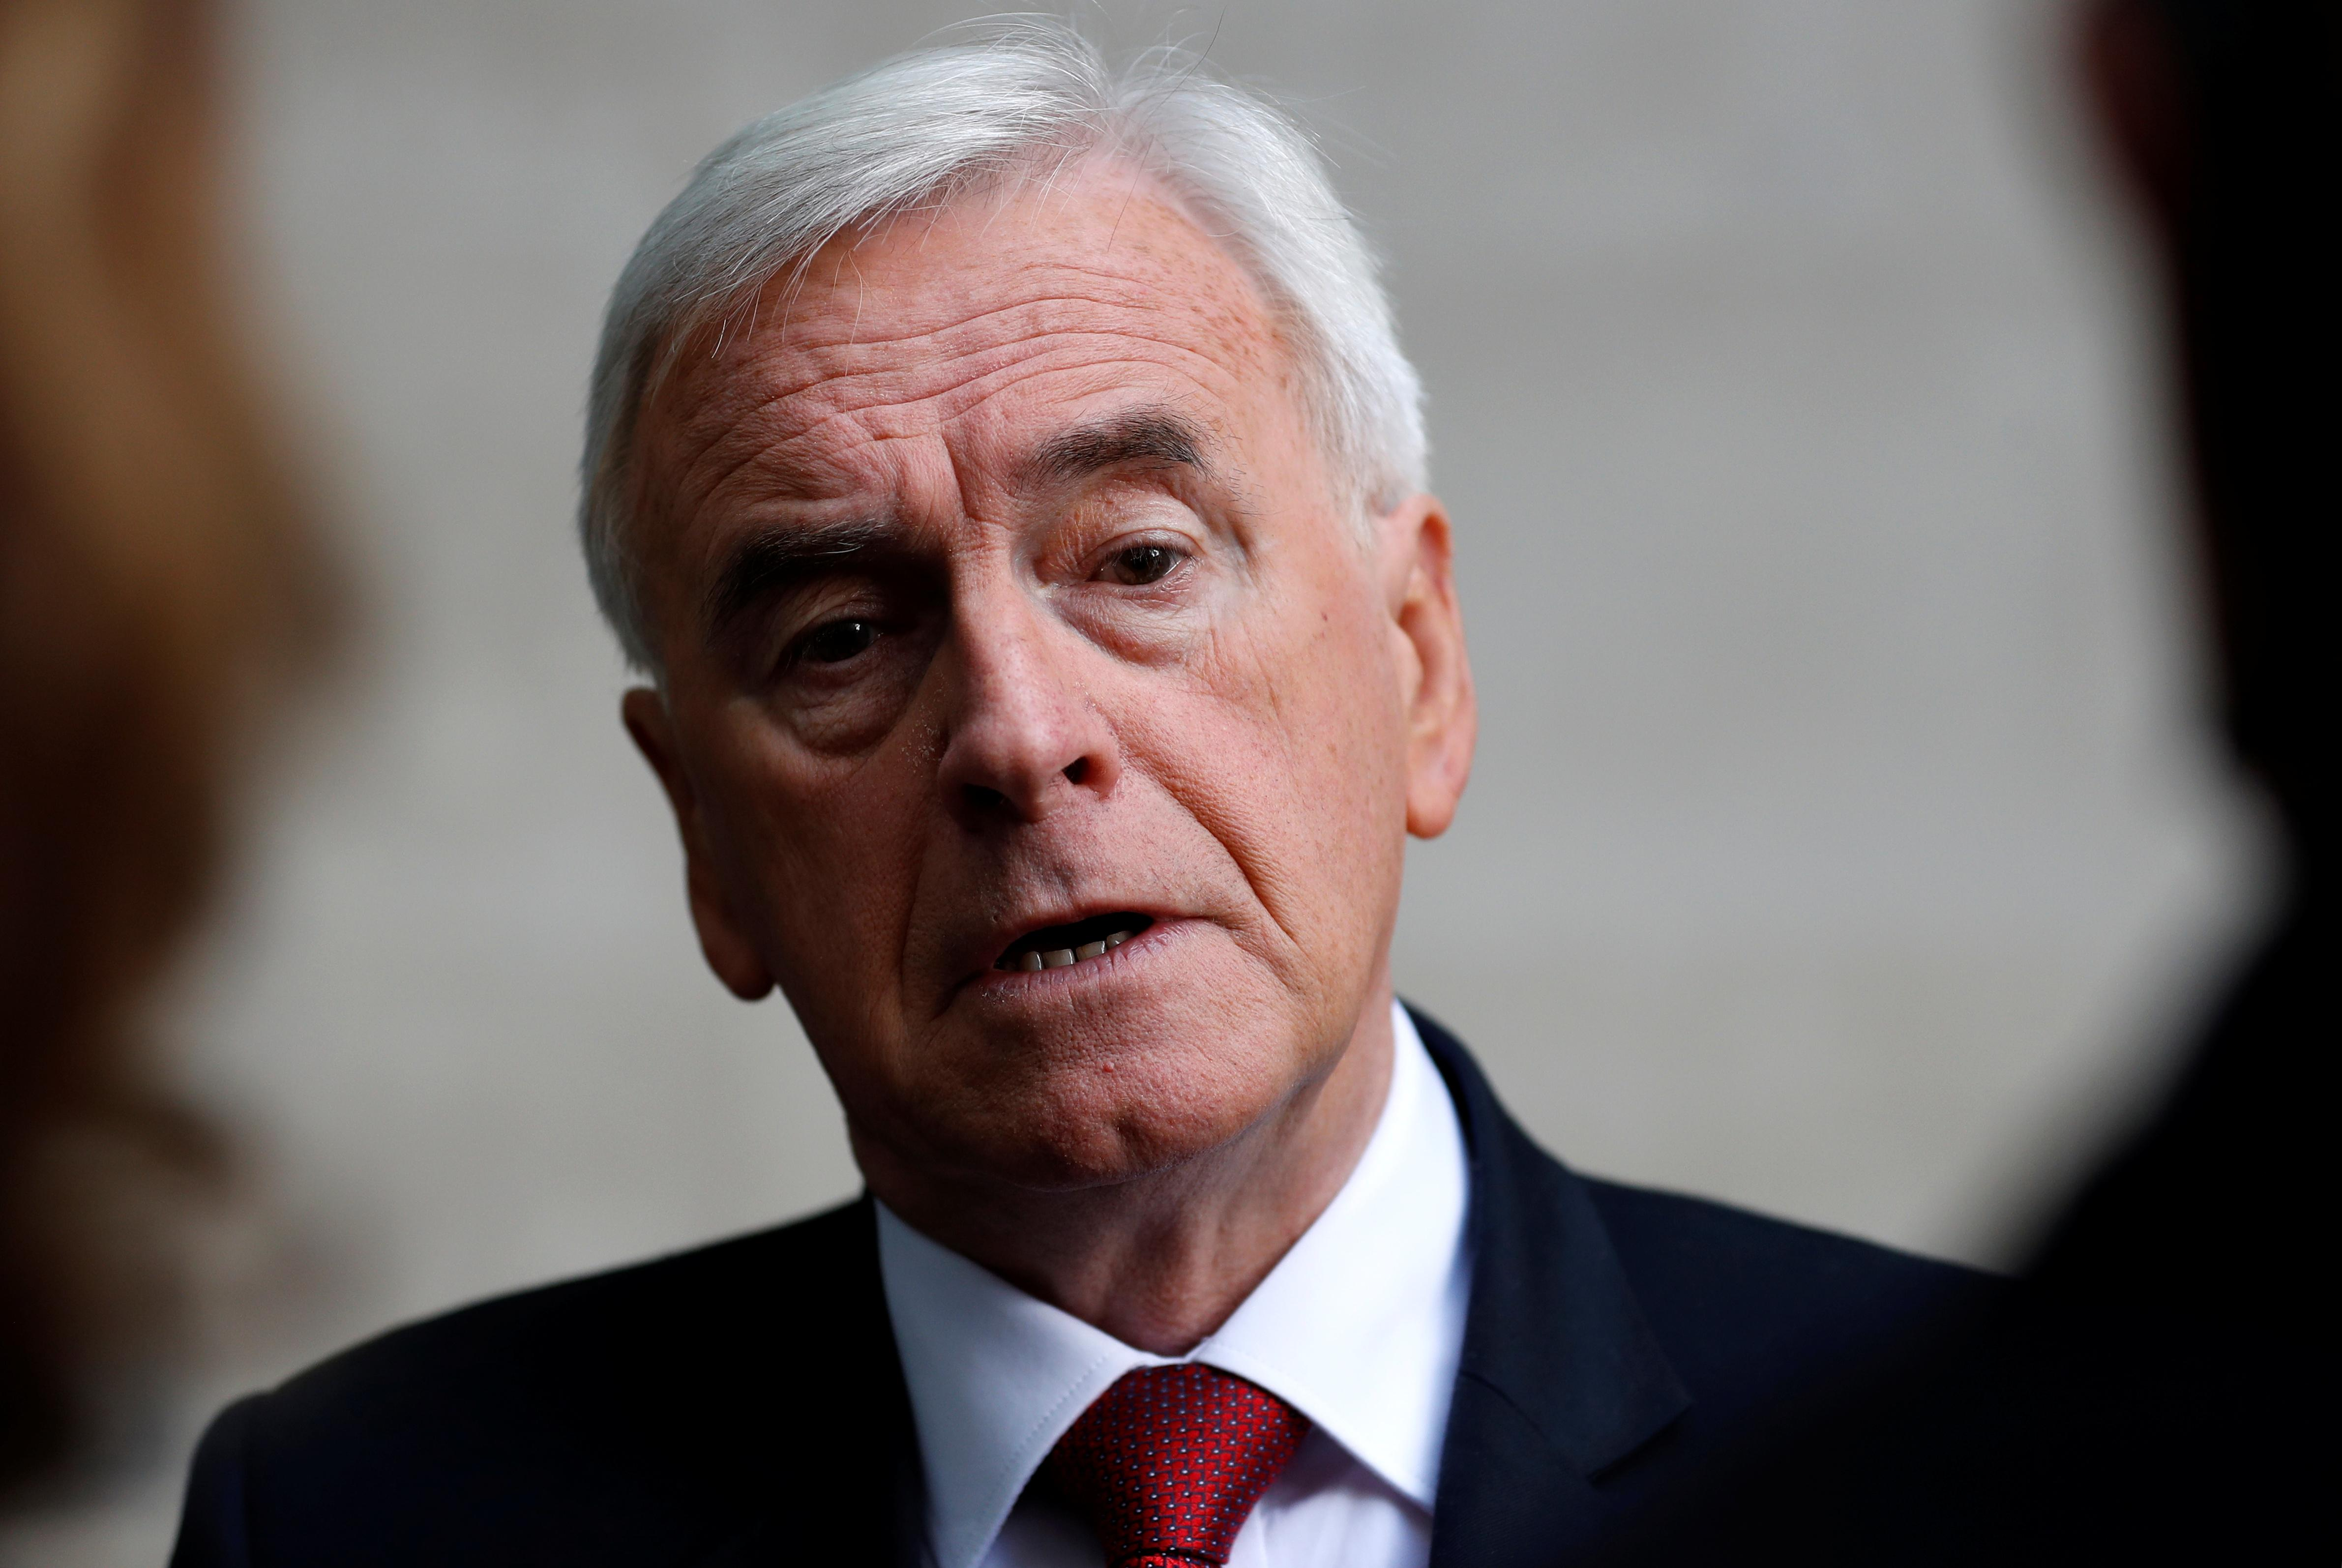 John McDonnell accused of leading 'silent coup' against Jeremy Corbyn